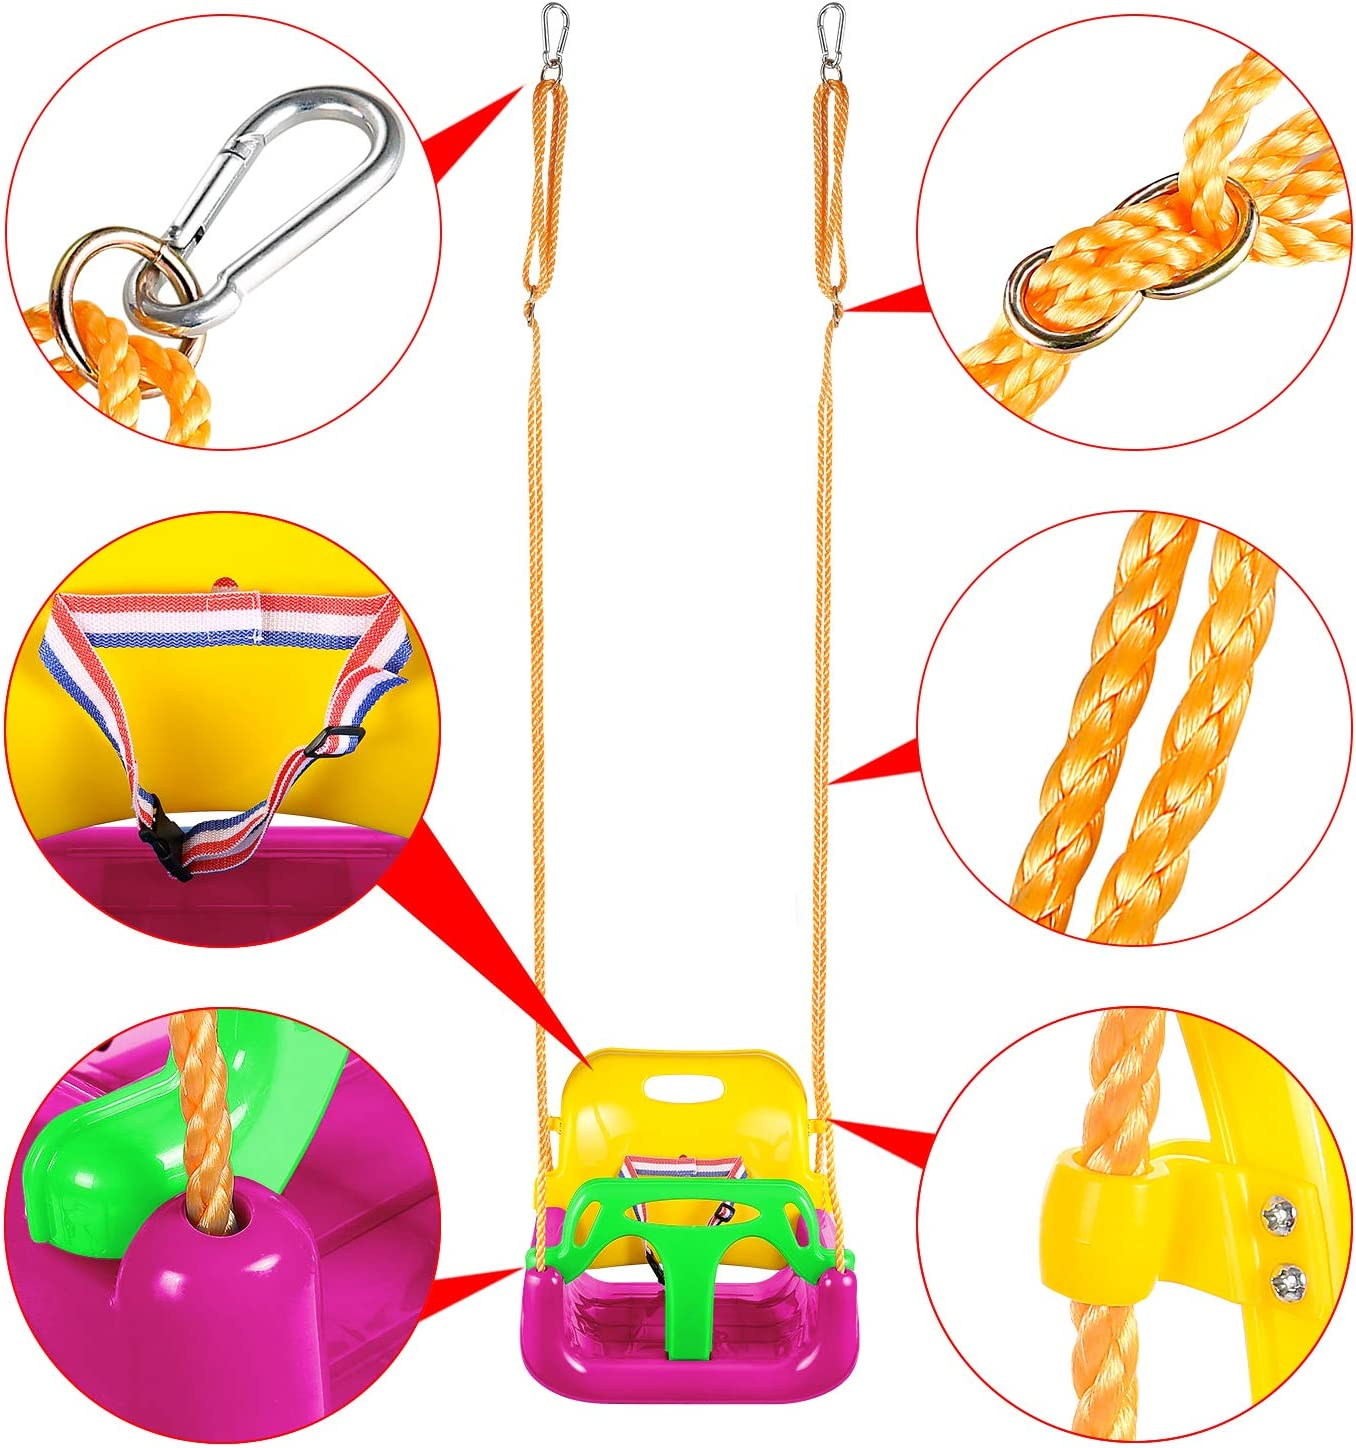 Pink Flyerstoy 3-in-1 Toddler Swing Seat Infants to Teens Hanging Swing Set for Playground Swing Set